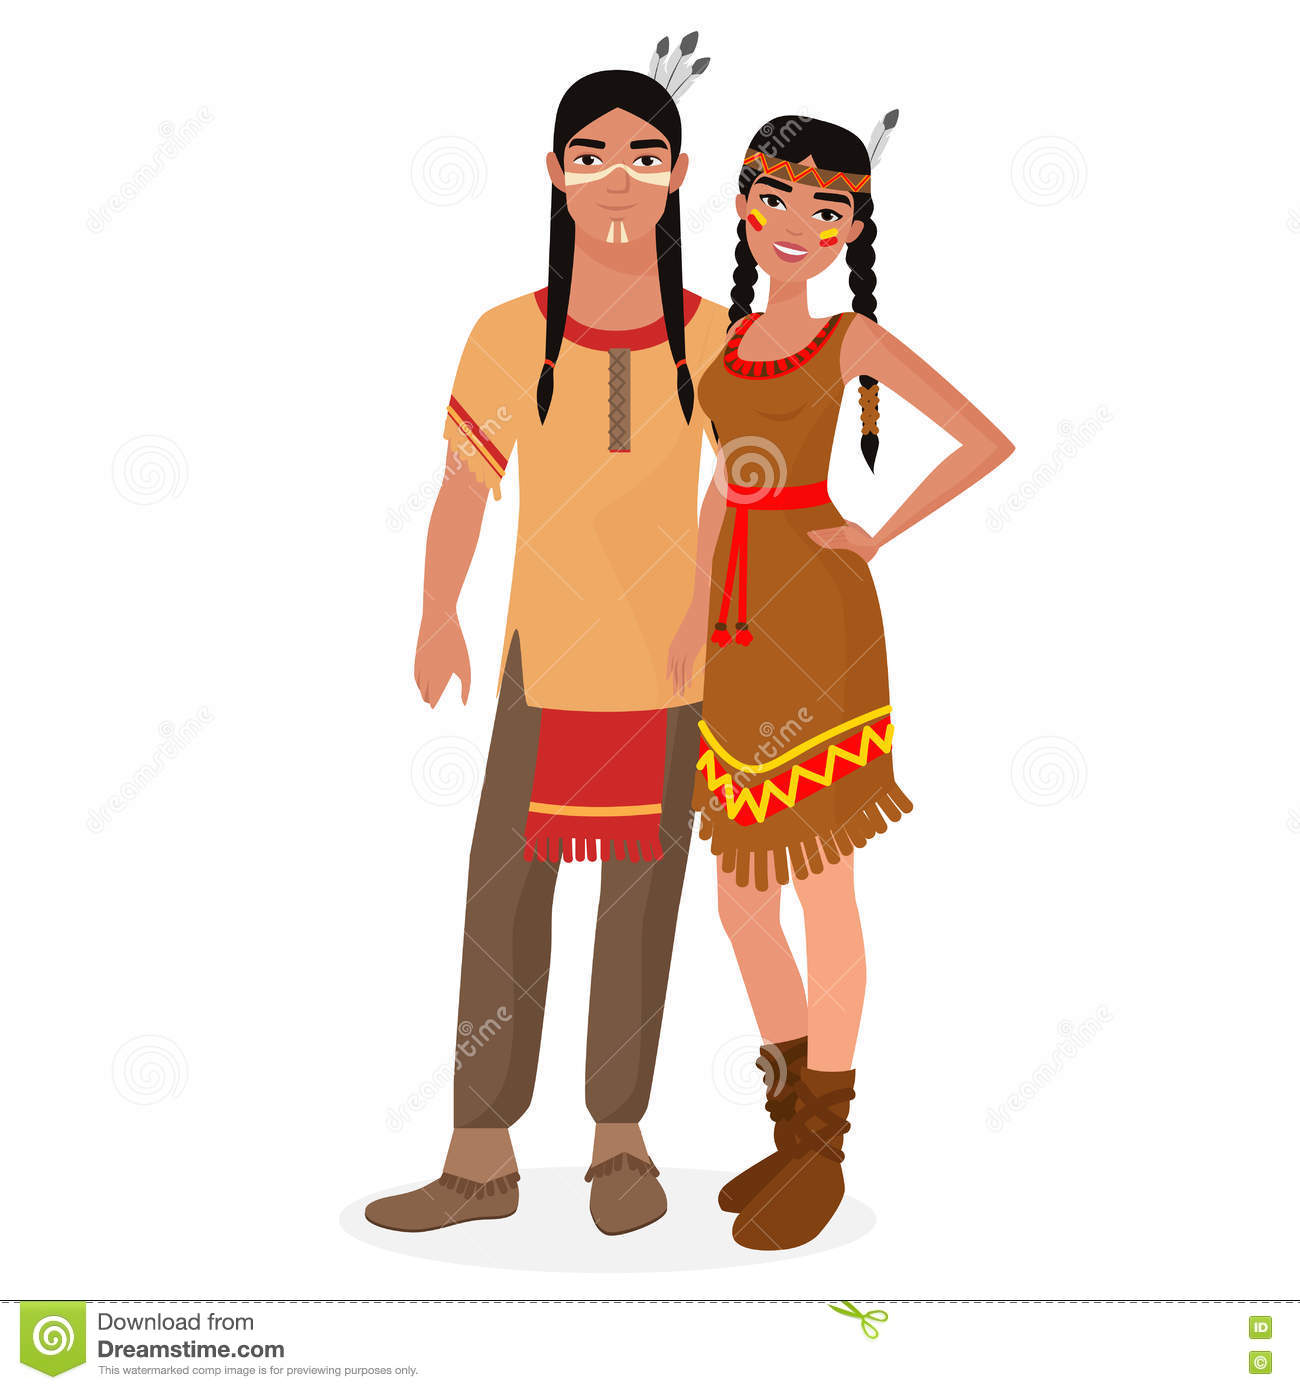 American Indian Man Clipart.